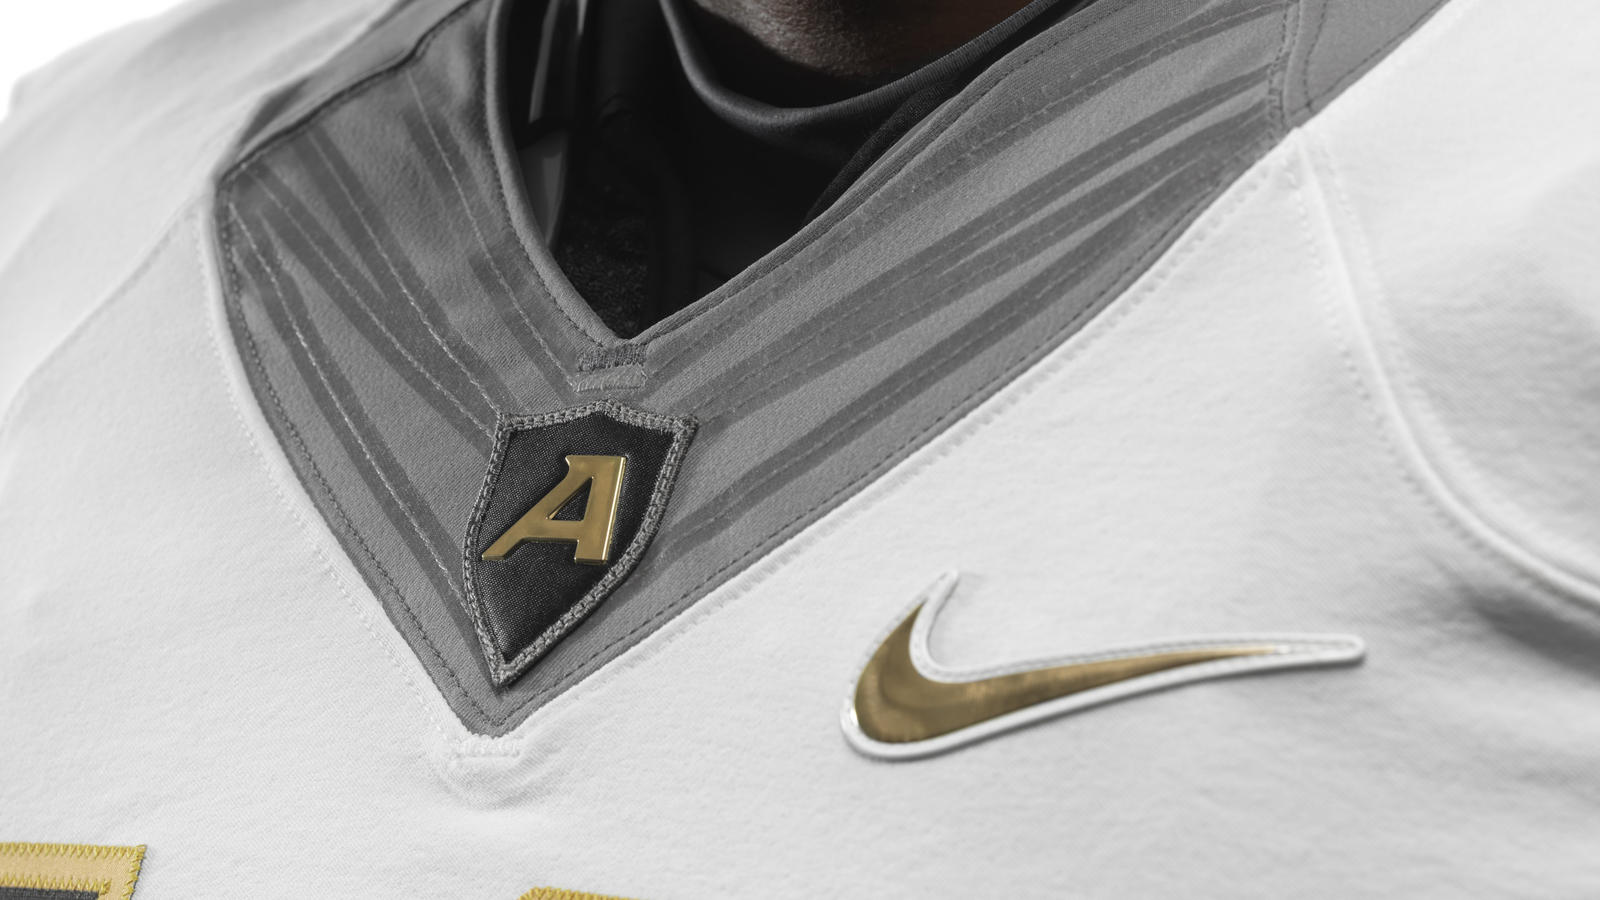 ncaa_fb13_uniforms_army_awithflywire_0025